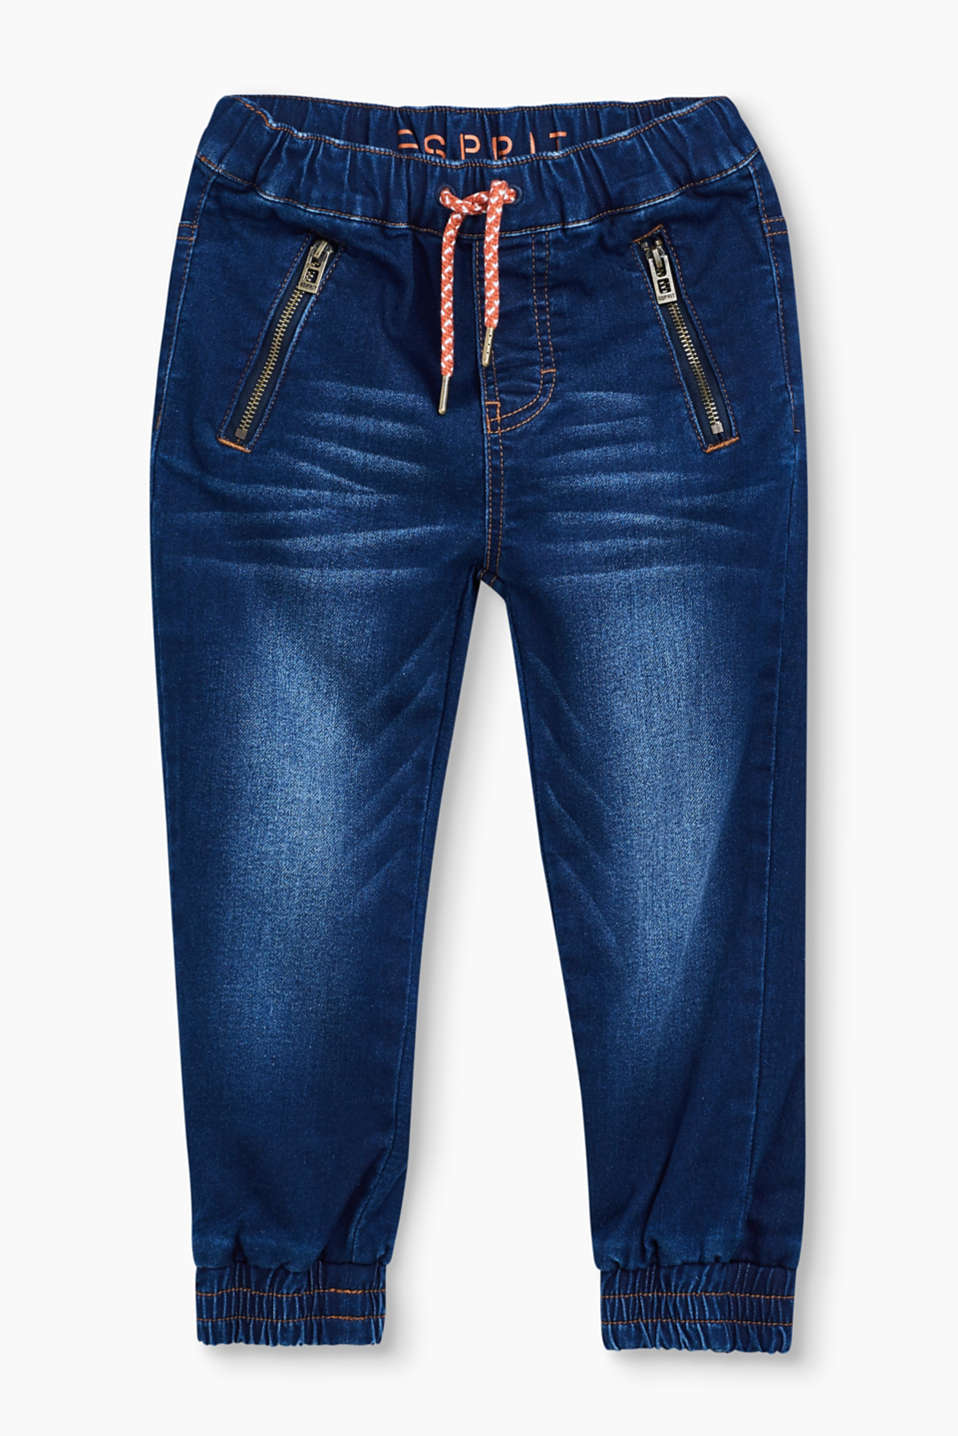 Jeans in a tracksuit bottoms style! A colourful cord tie and zip pockets make these soft, comfy jeans eye-catching.